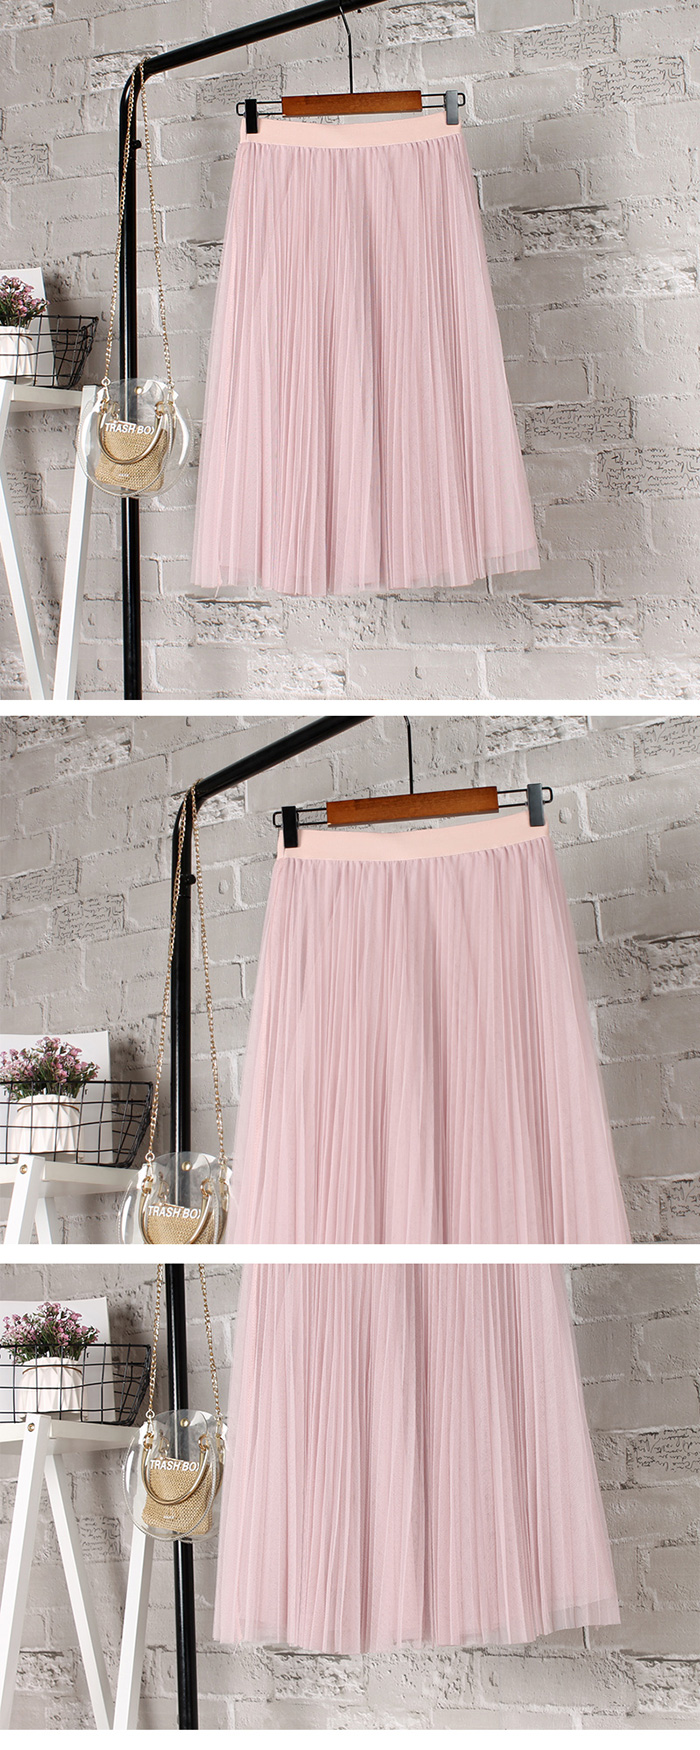 HTB1FDIfLxnaK1RjSZFtq6zC2VXaX - Tulle Skirts Womens Midi Pleated Skirt Black Pink Tulle Skirt Women Spring Summer Korean Elastic High Waist Mesh Tutu Skirt